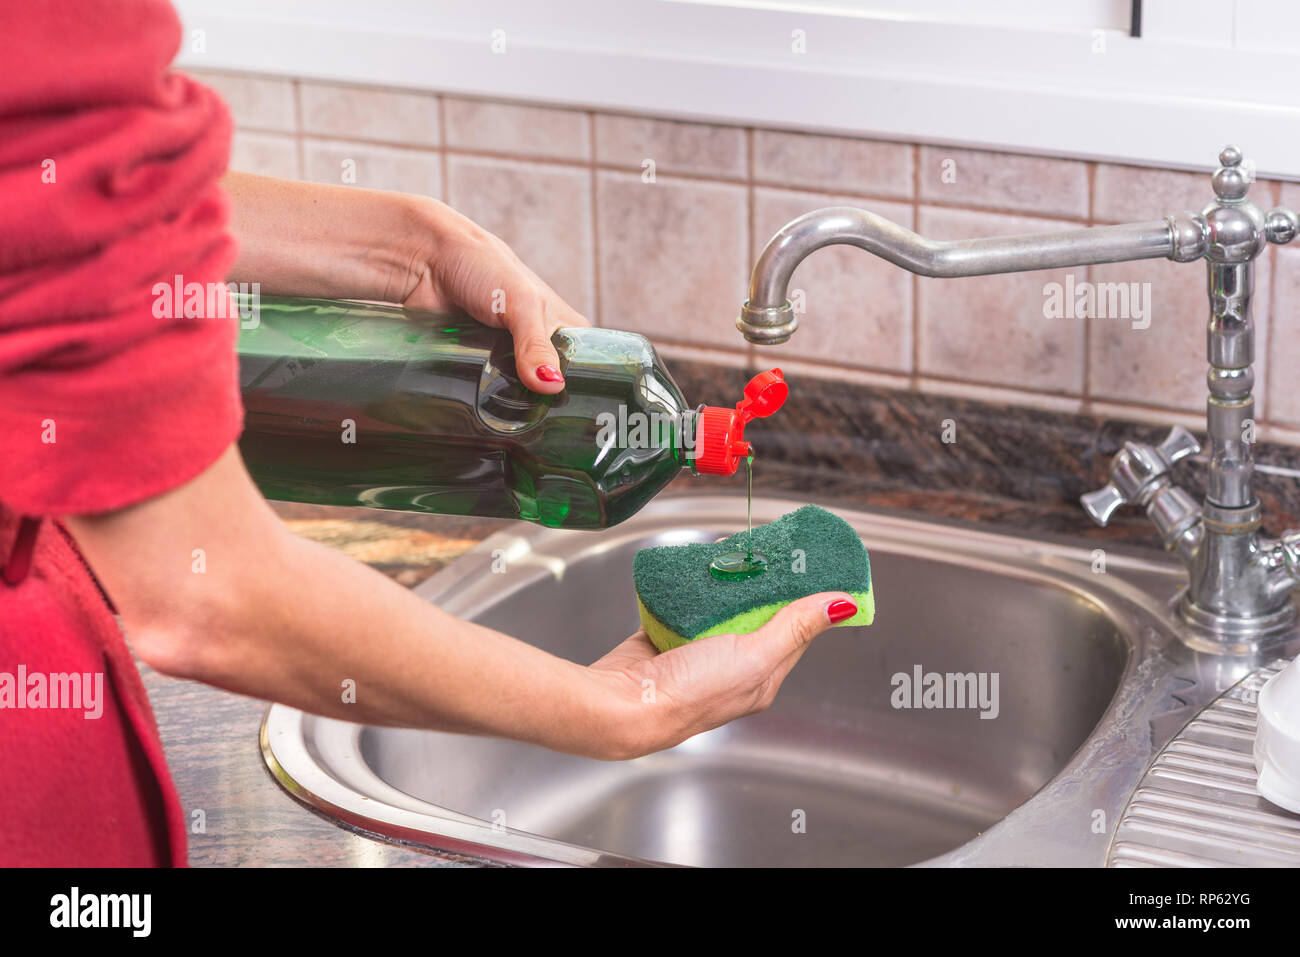 woman with red manicure putting detergent in the scourer, to wash the dishes . - Stock Image